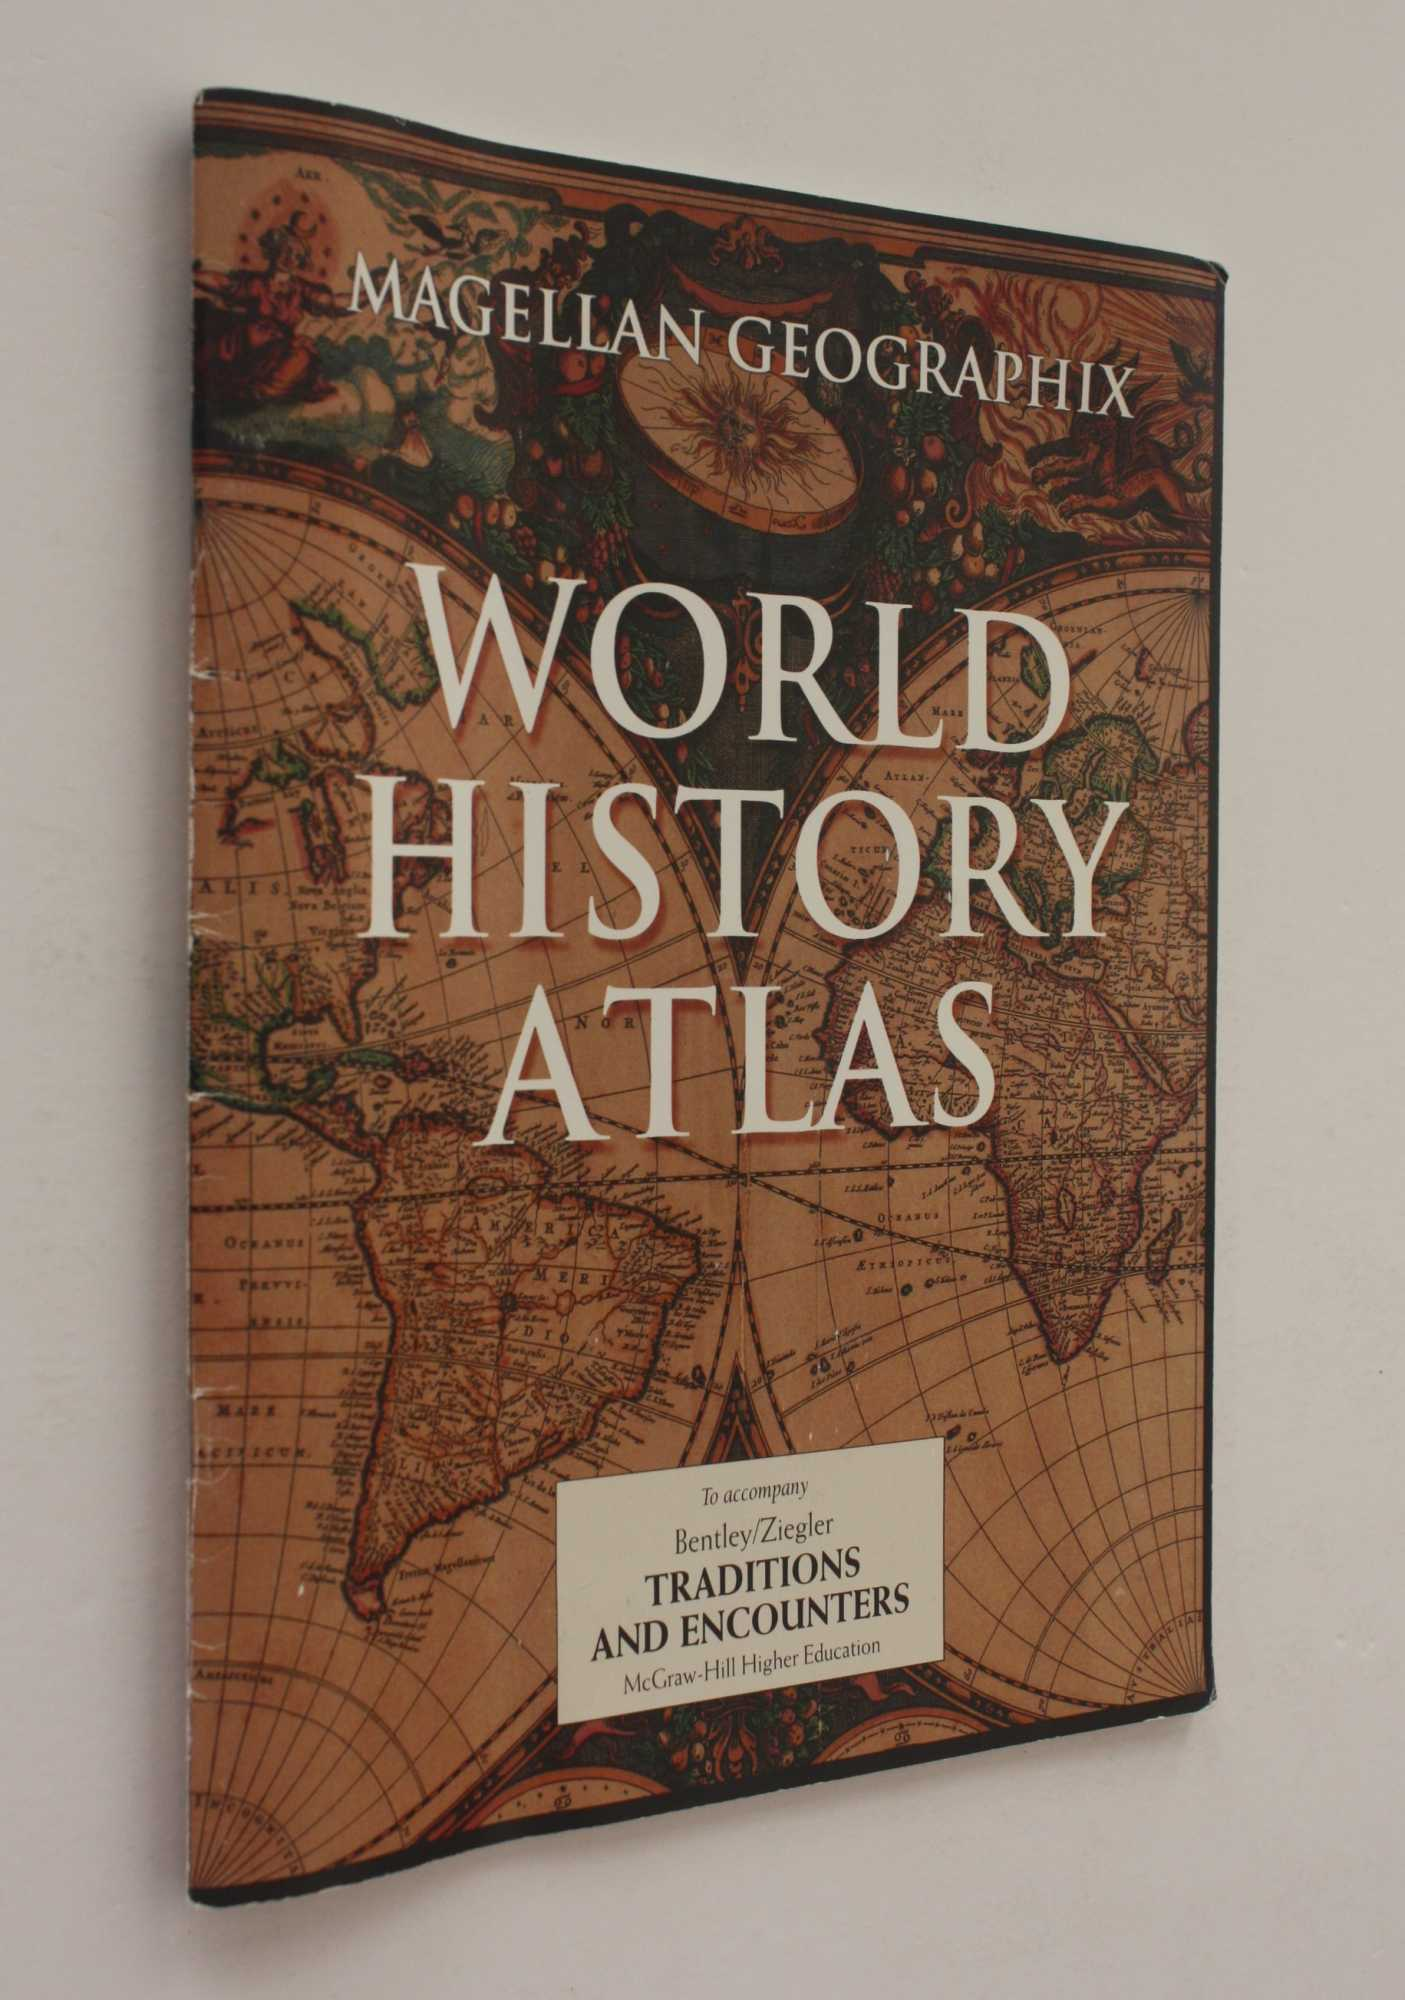 World History Atlas, Unknown